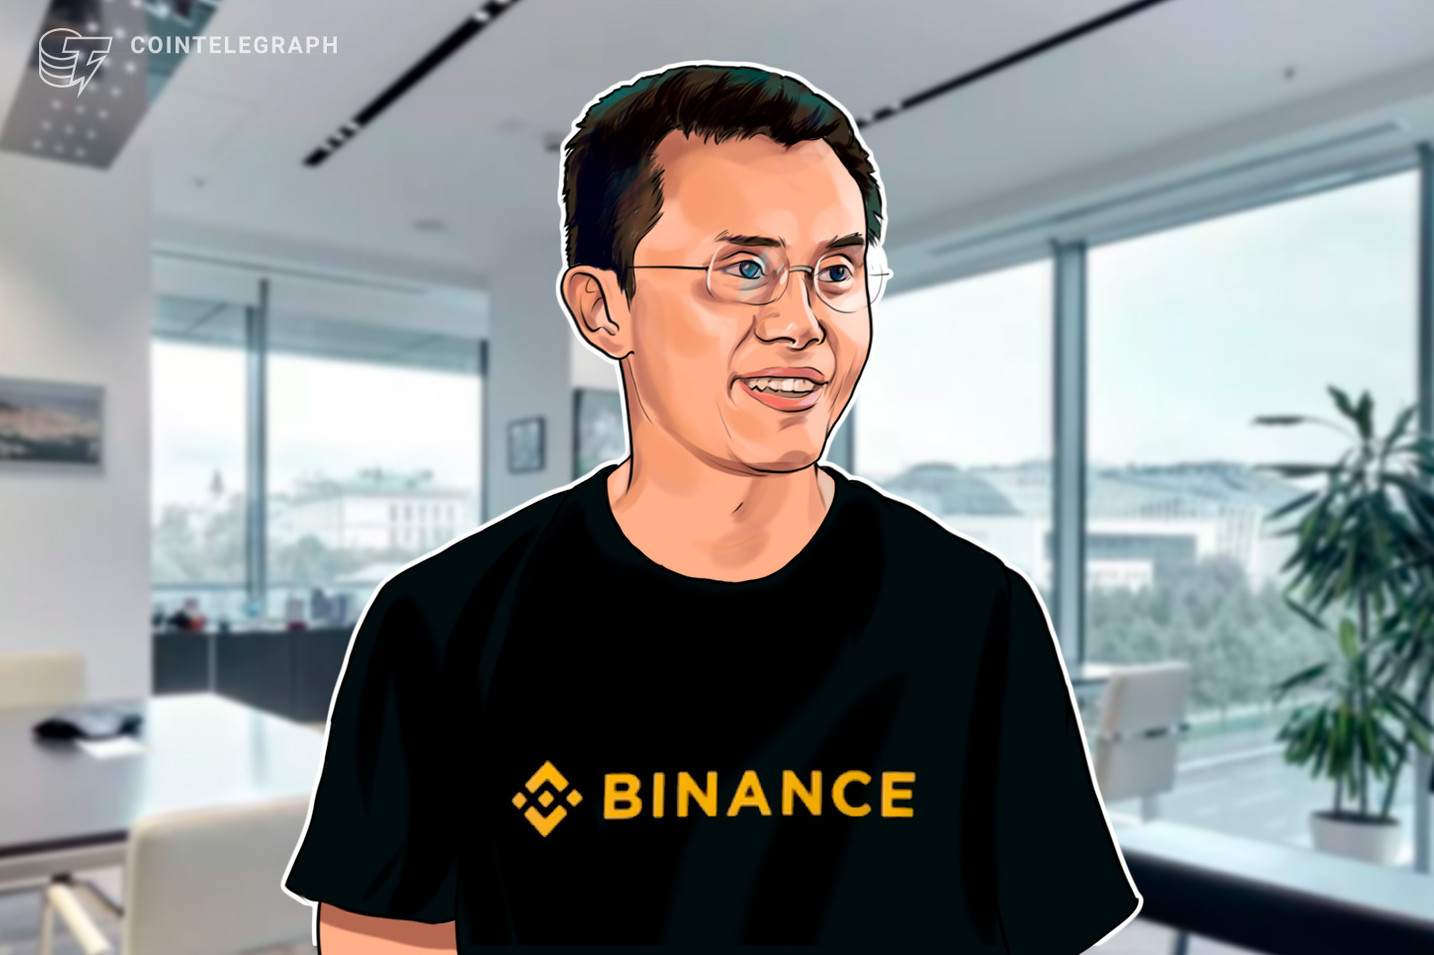 CEO di Binance: i resoconti sui falsi volumi di scambio apporteranno benefici all'industria